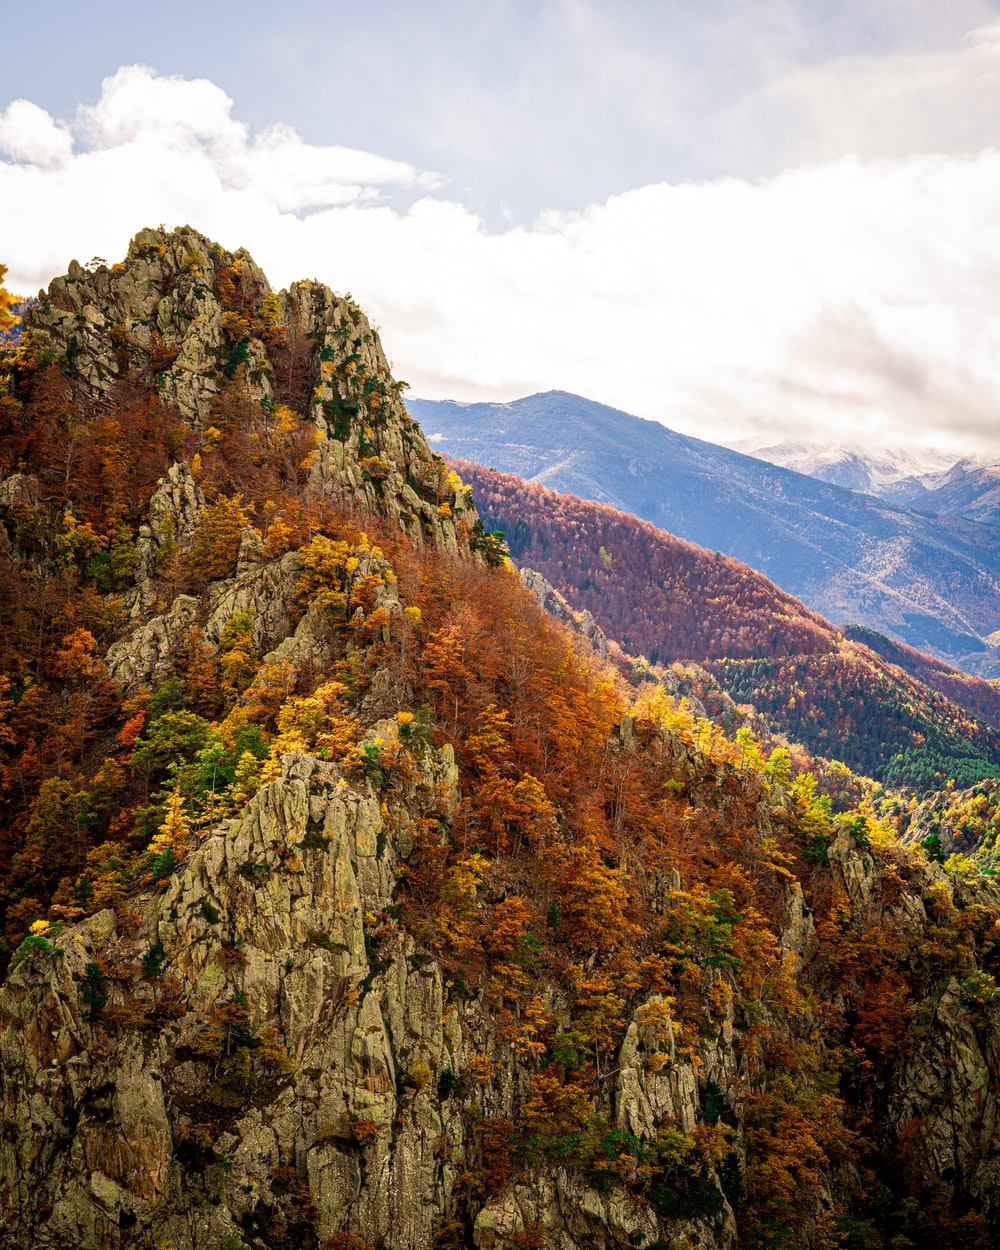 green and brown trees on mountain under white clouds during daytime